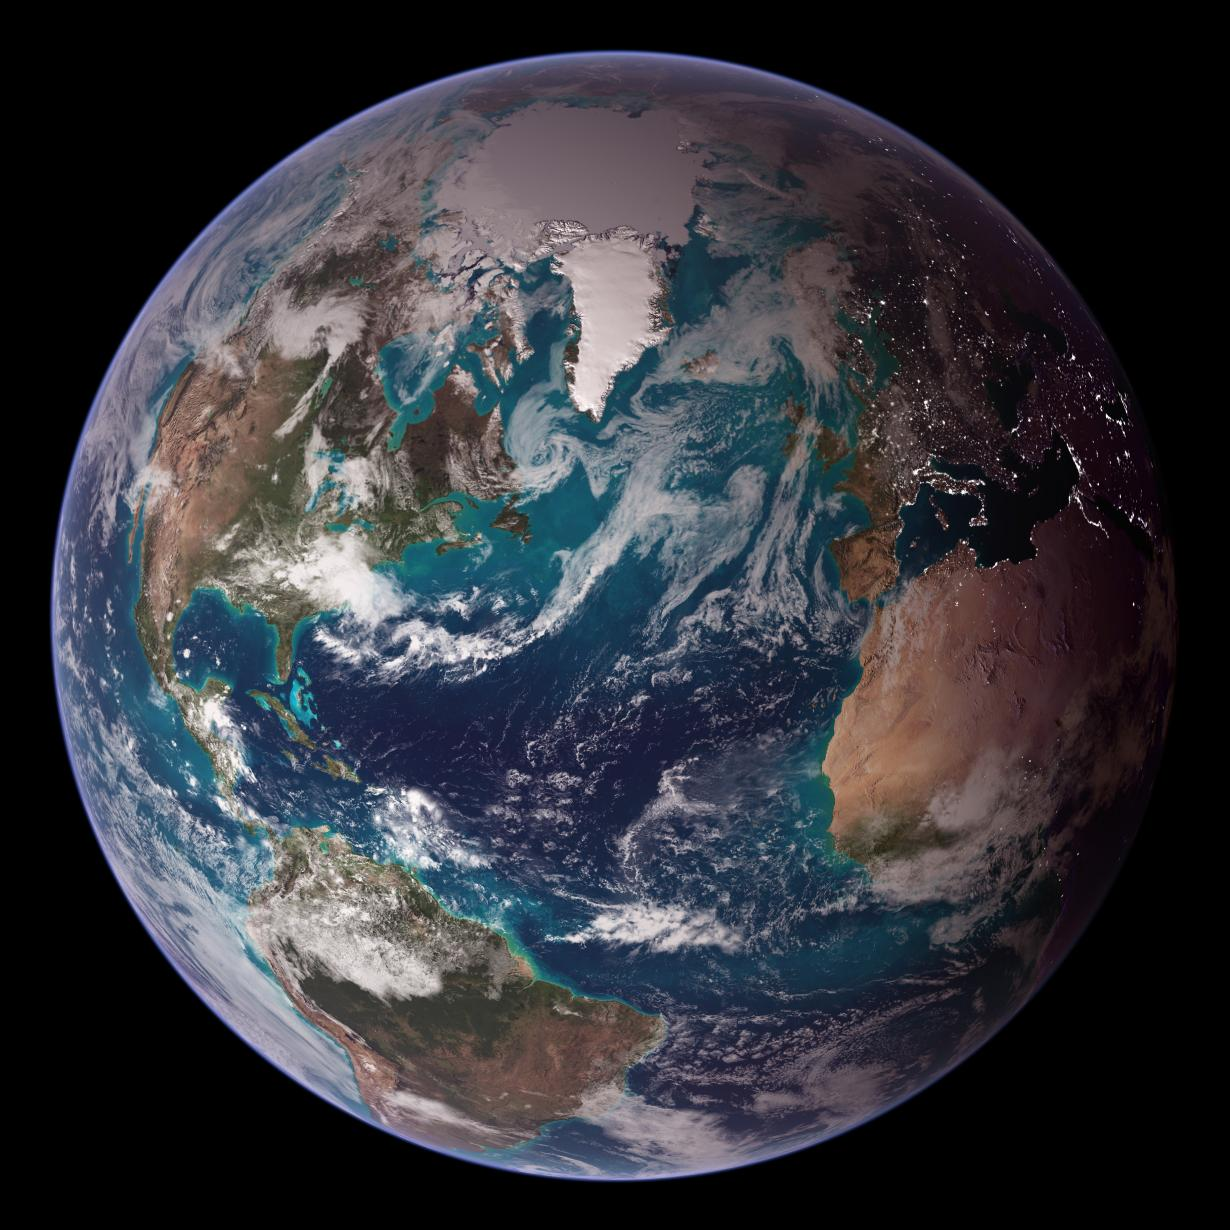 Bluemarble image of Earth